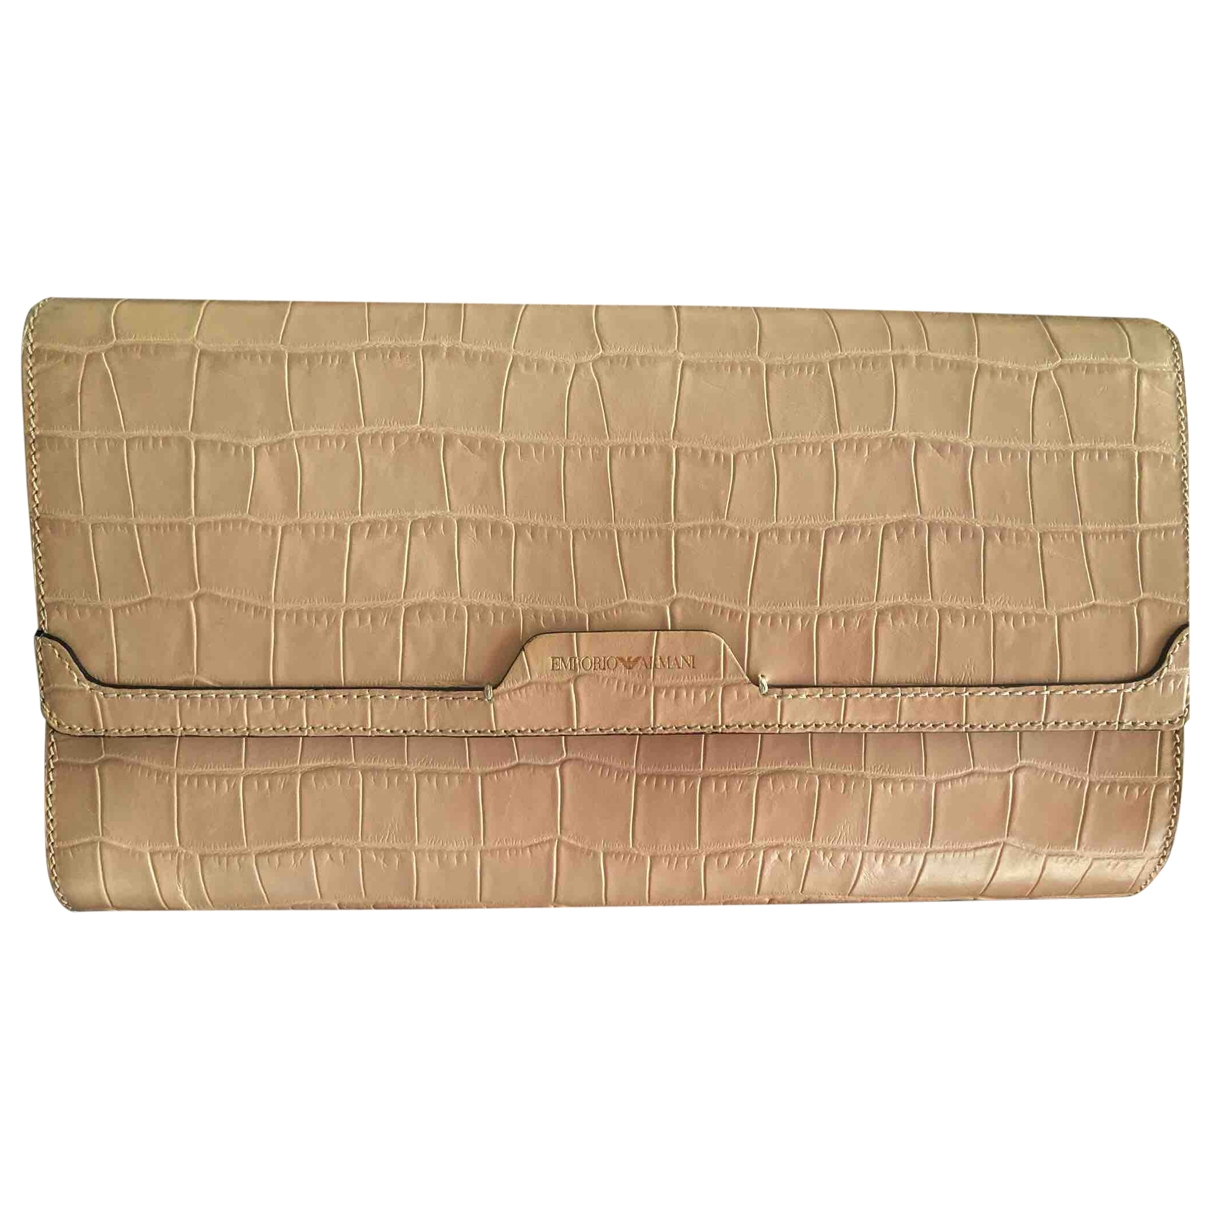 Emporio Armani \N Beige Leather Clutch bag for Women \N